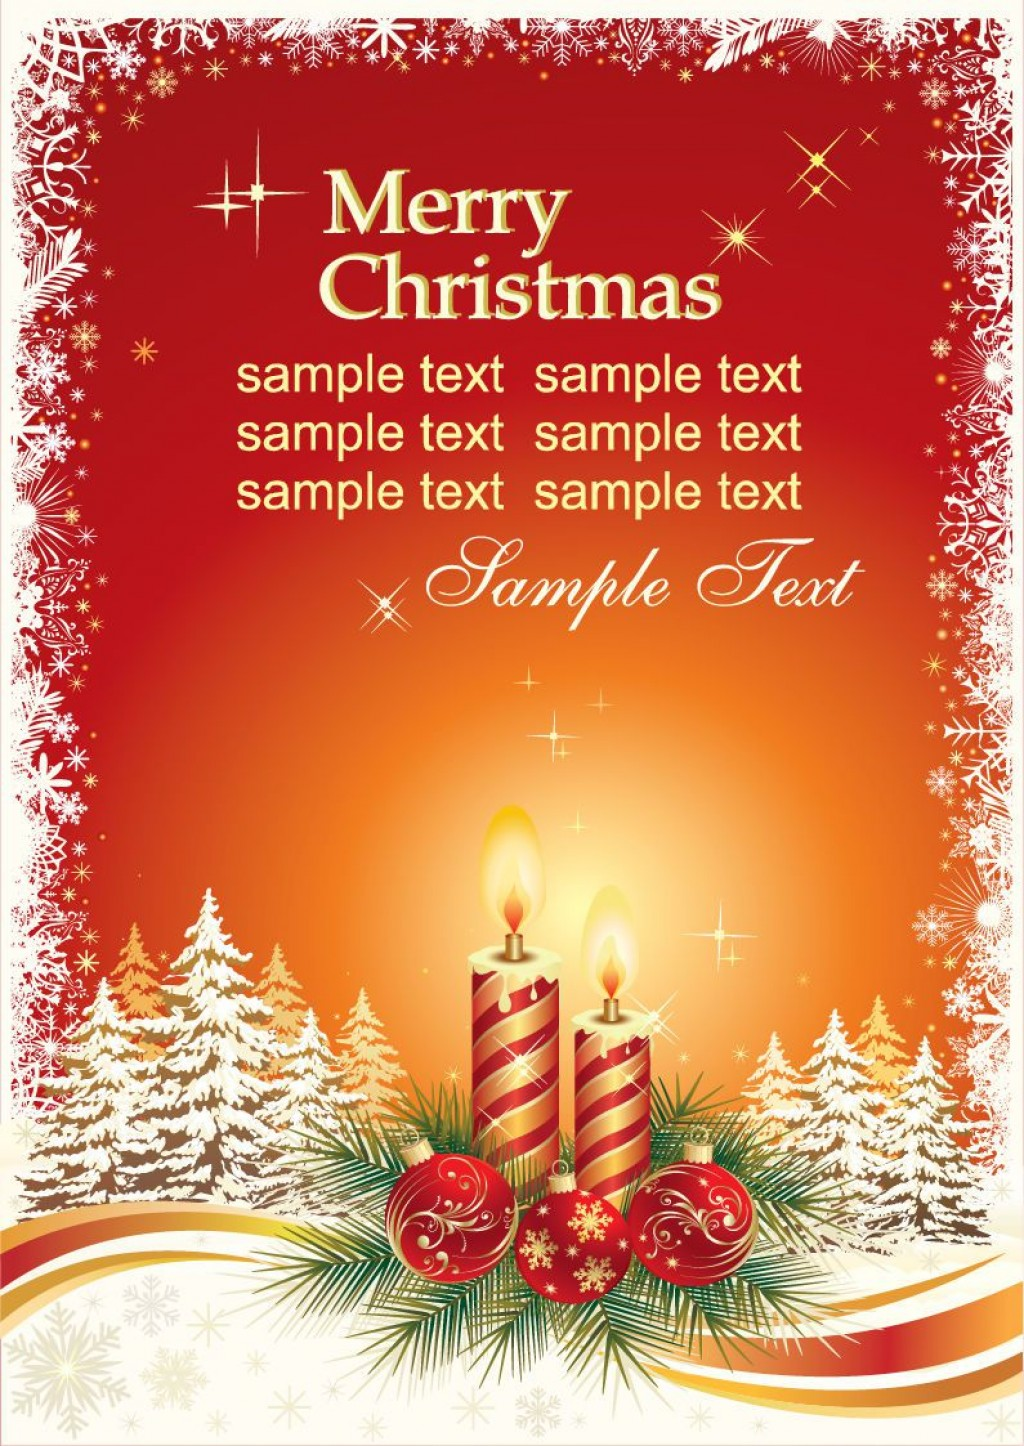 006 Staggering Christma Card Template Free Download Highest Clarity  Photo Xma PlaceLarge